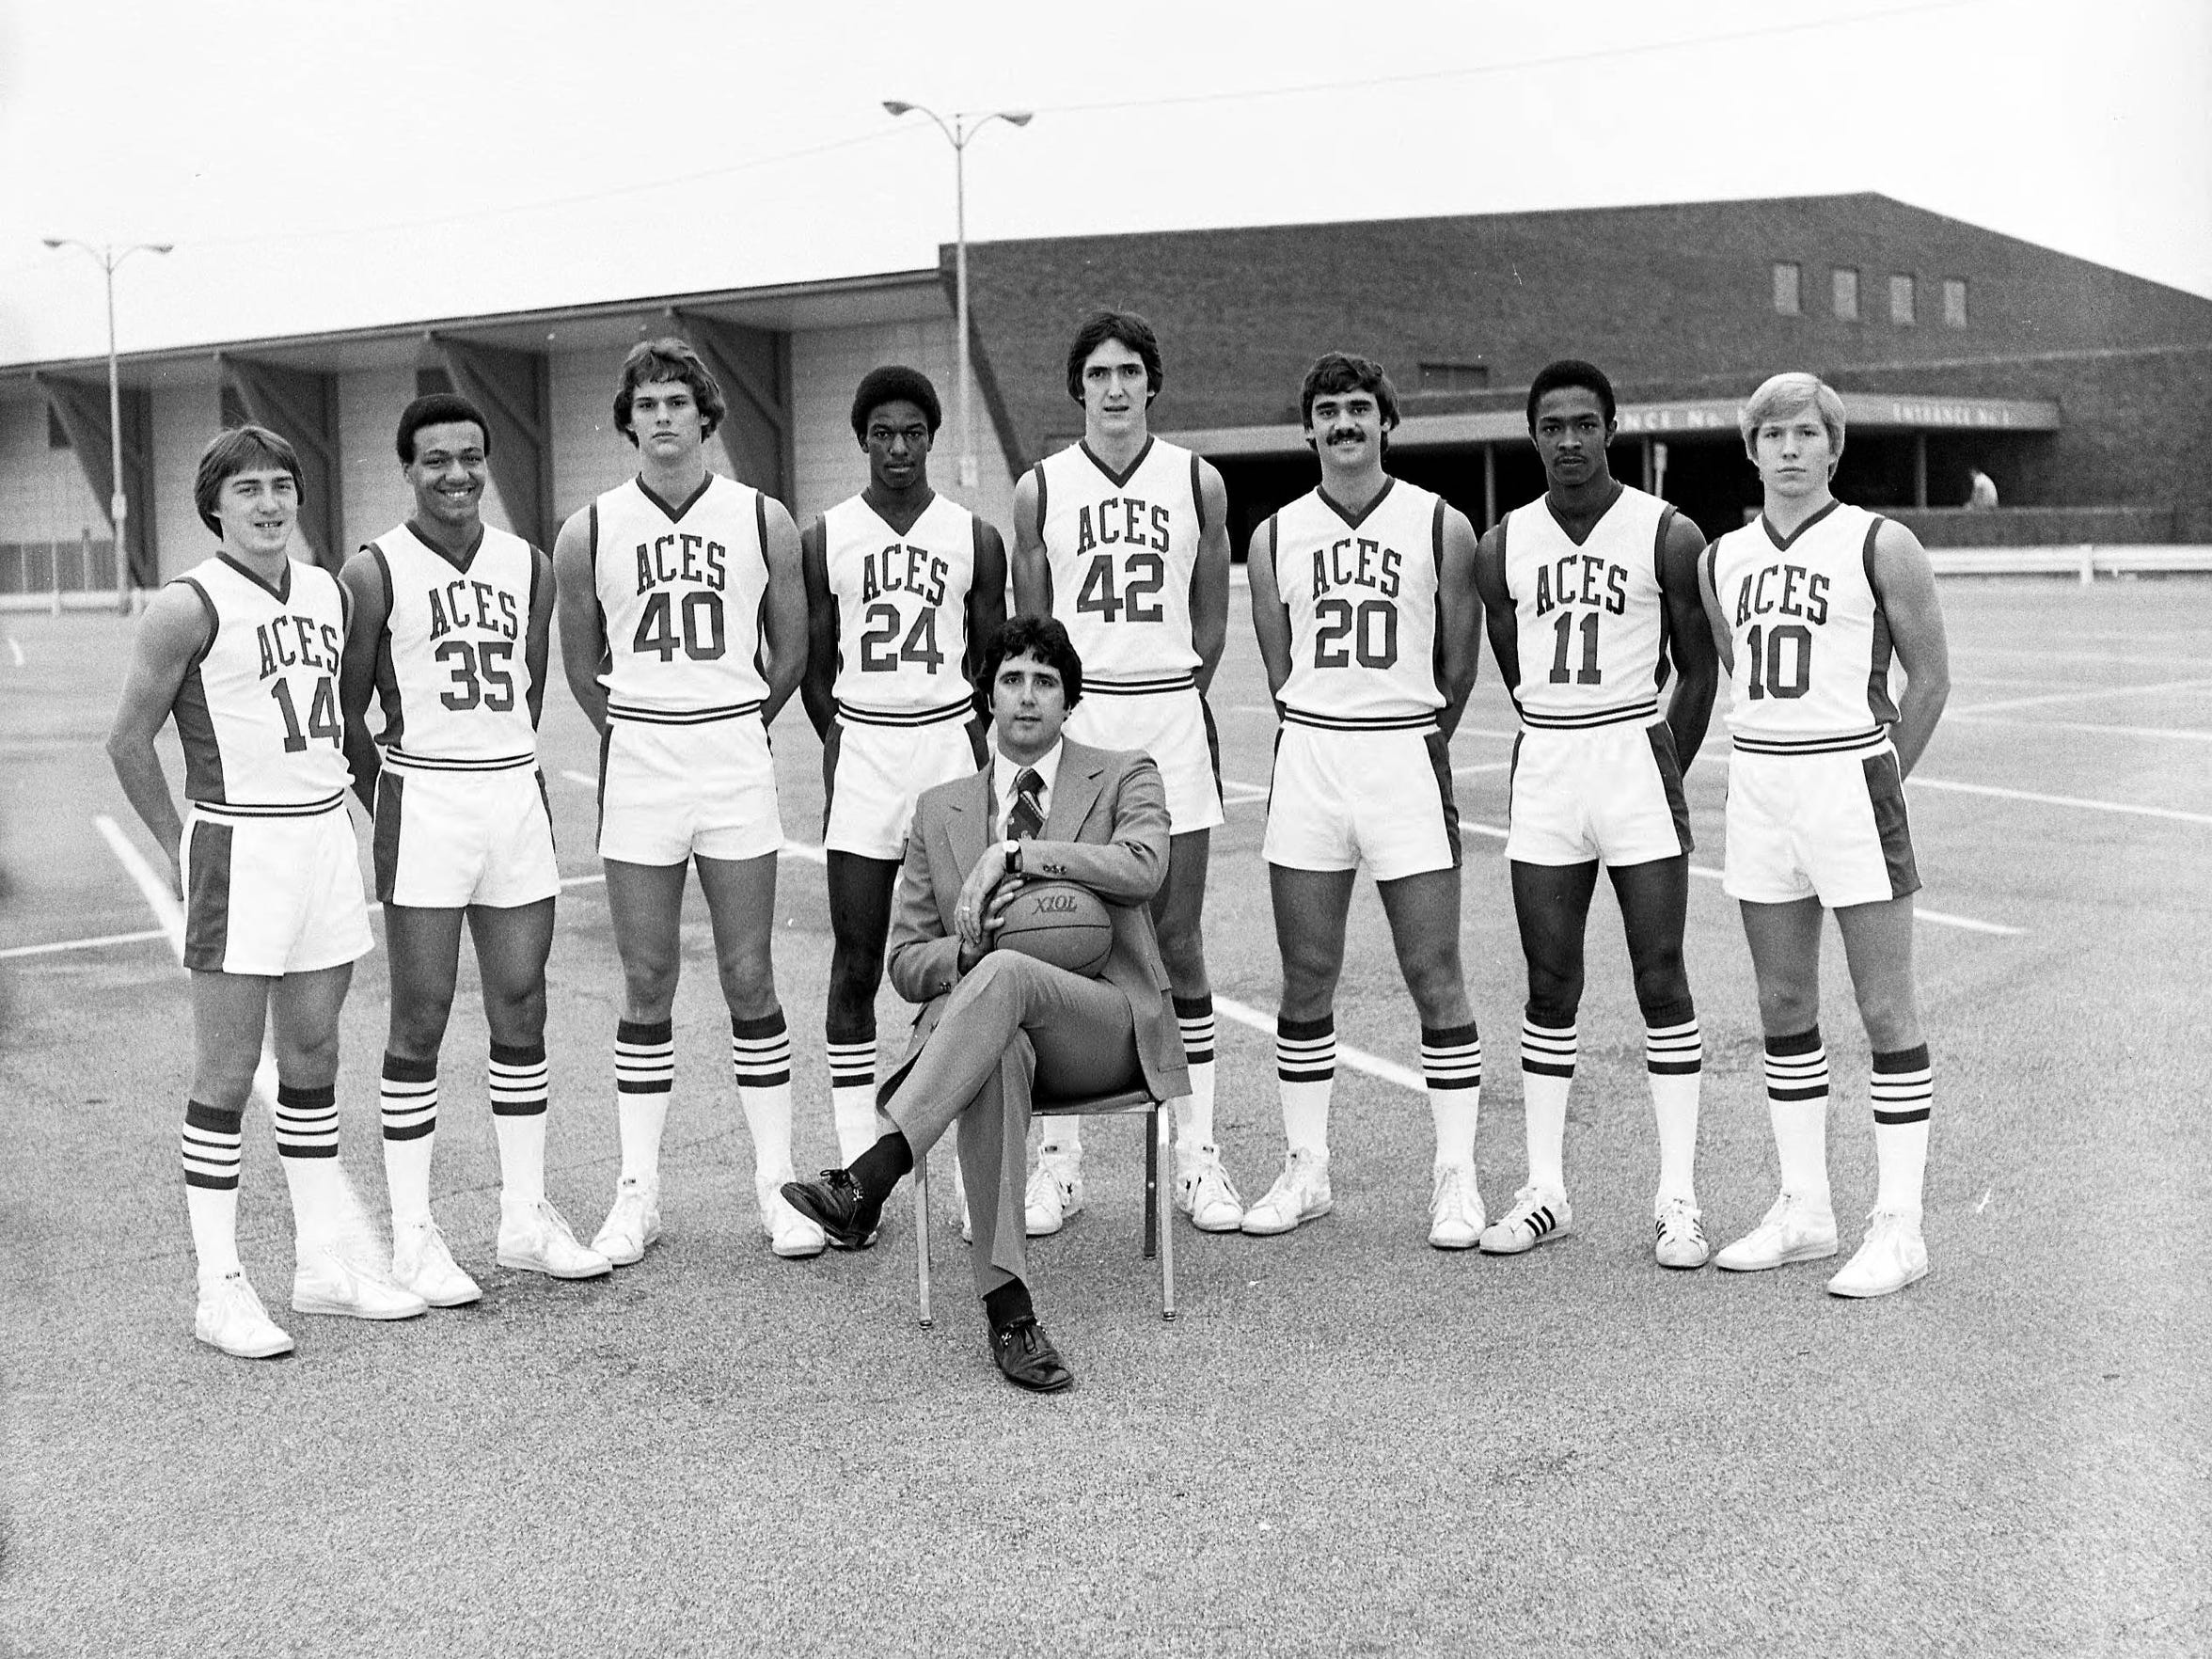 University of Evansville Purple Ace's 1977 basketball